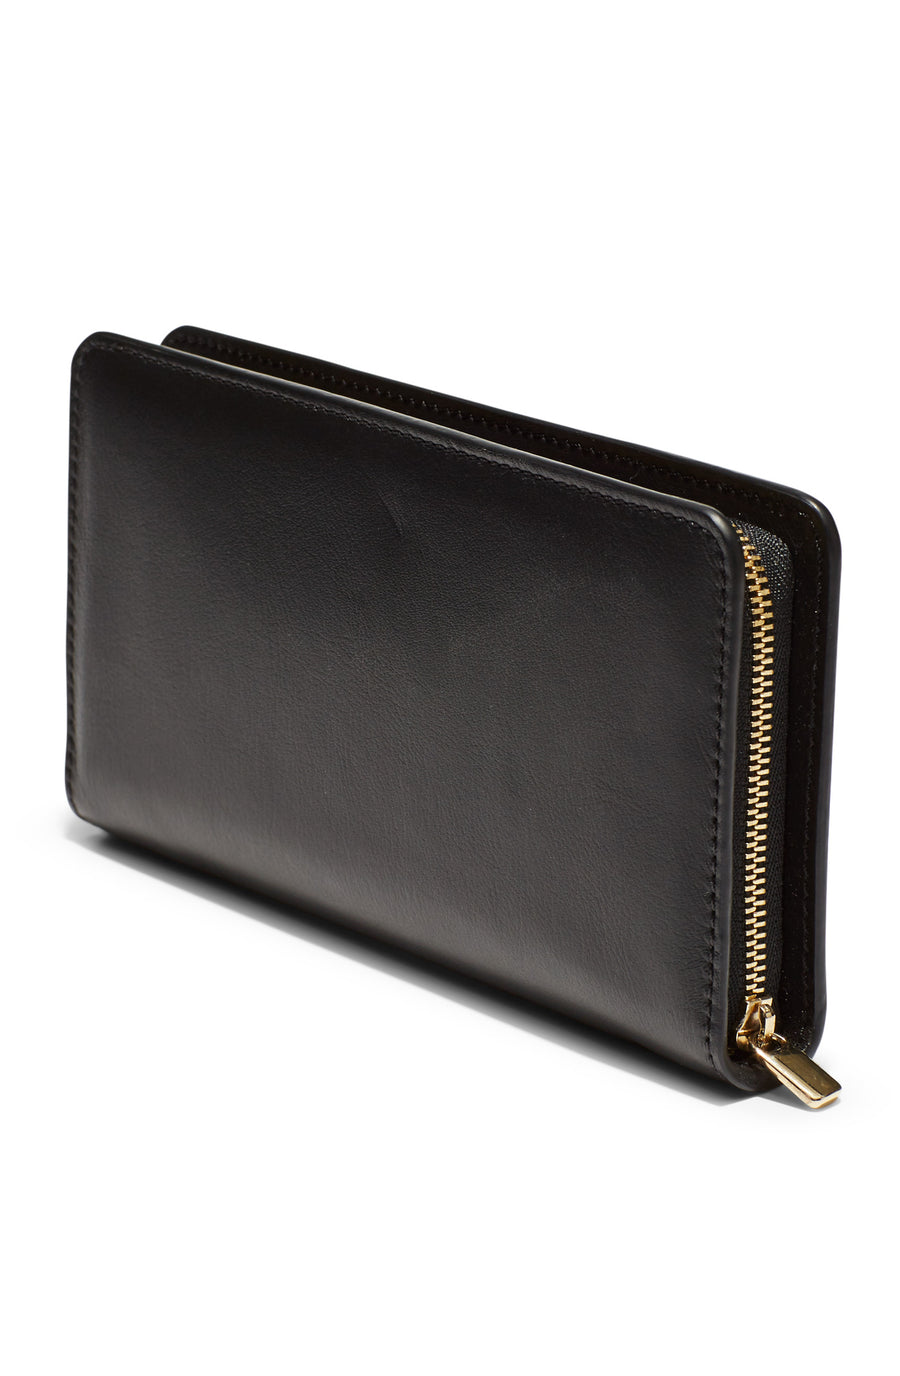 Large Wallet, 8 credit card slots, zip enclosed coin purse, two internal compartments, suede lining, gold contrast zip, gold embossed logo, color nero